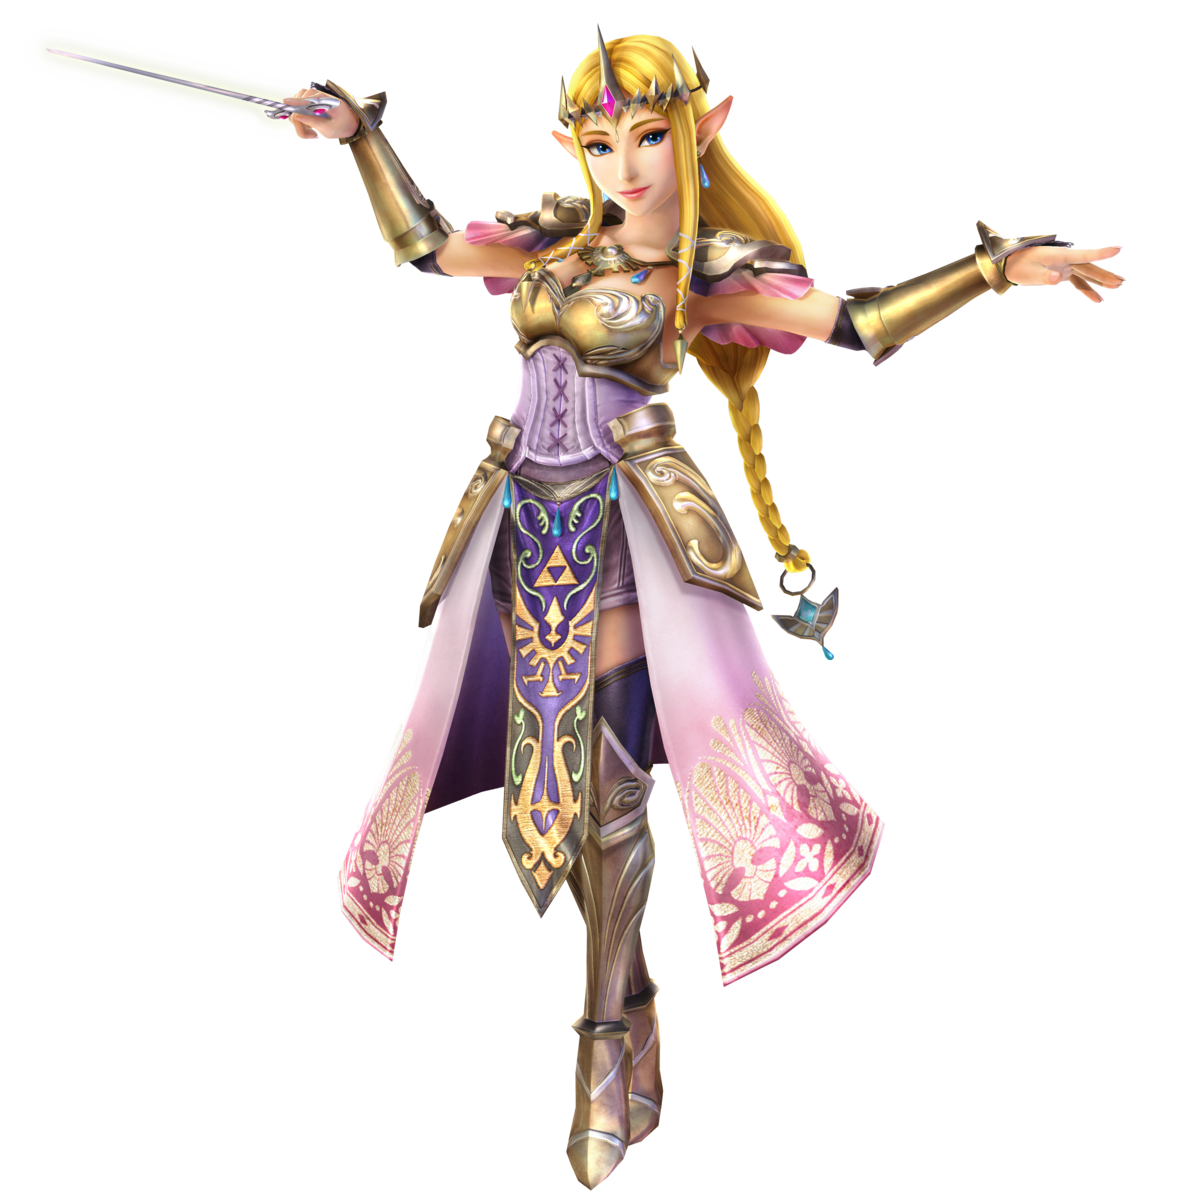 Hyrule Warriors Png Free Hyrule Warriors Png Transparent Images 59735 Pngio